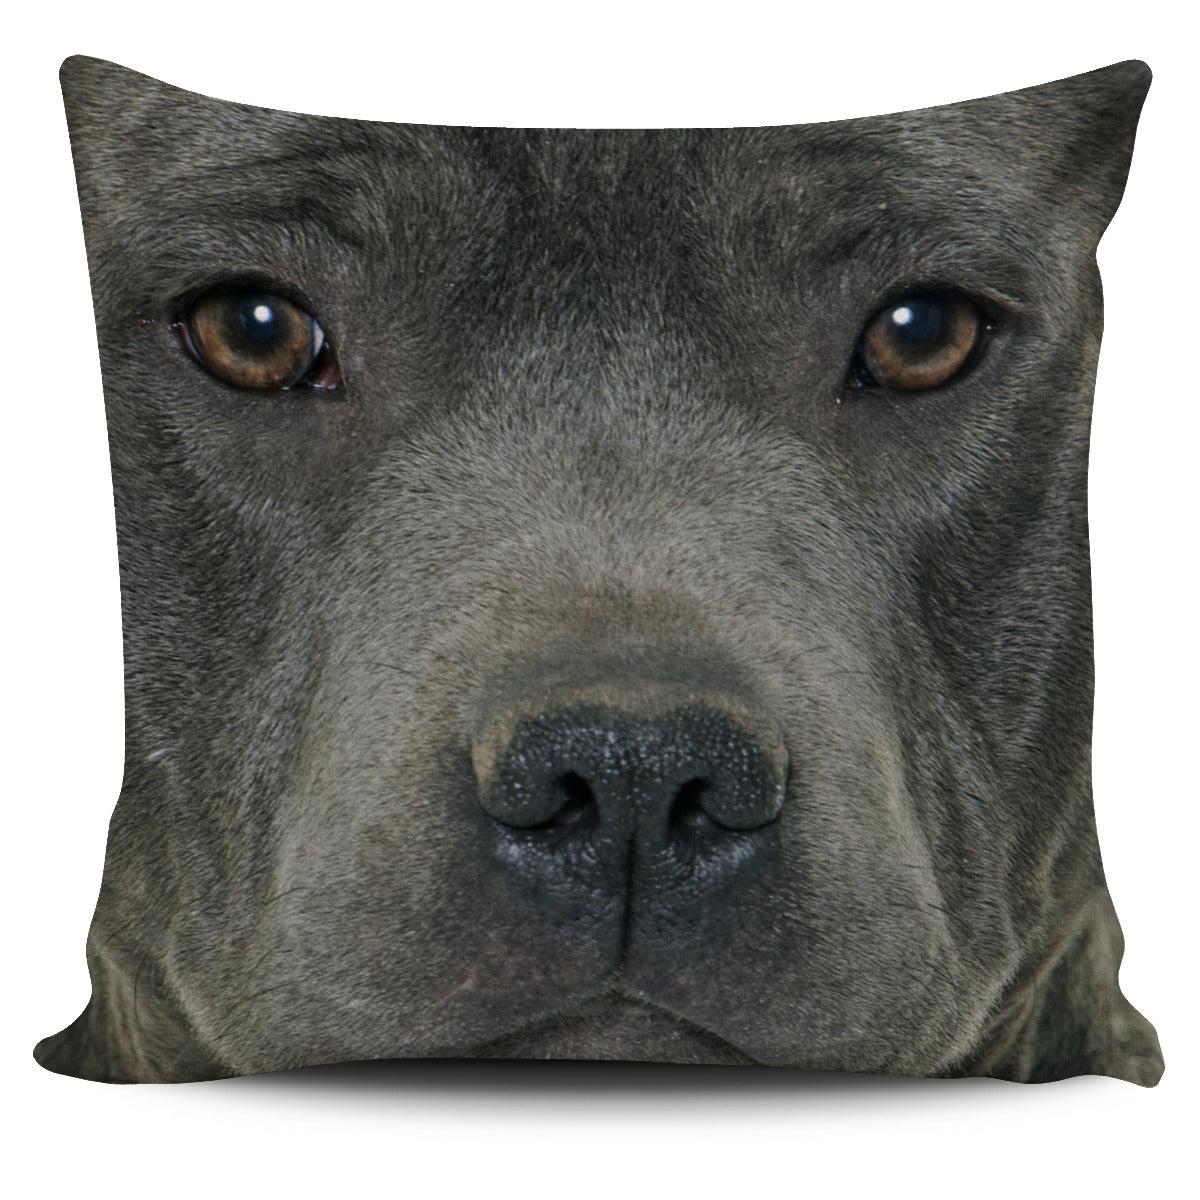 Pit Bull Face Pillow Cover